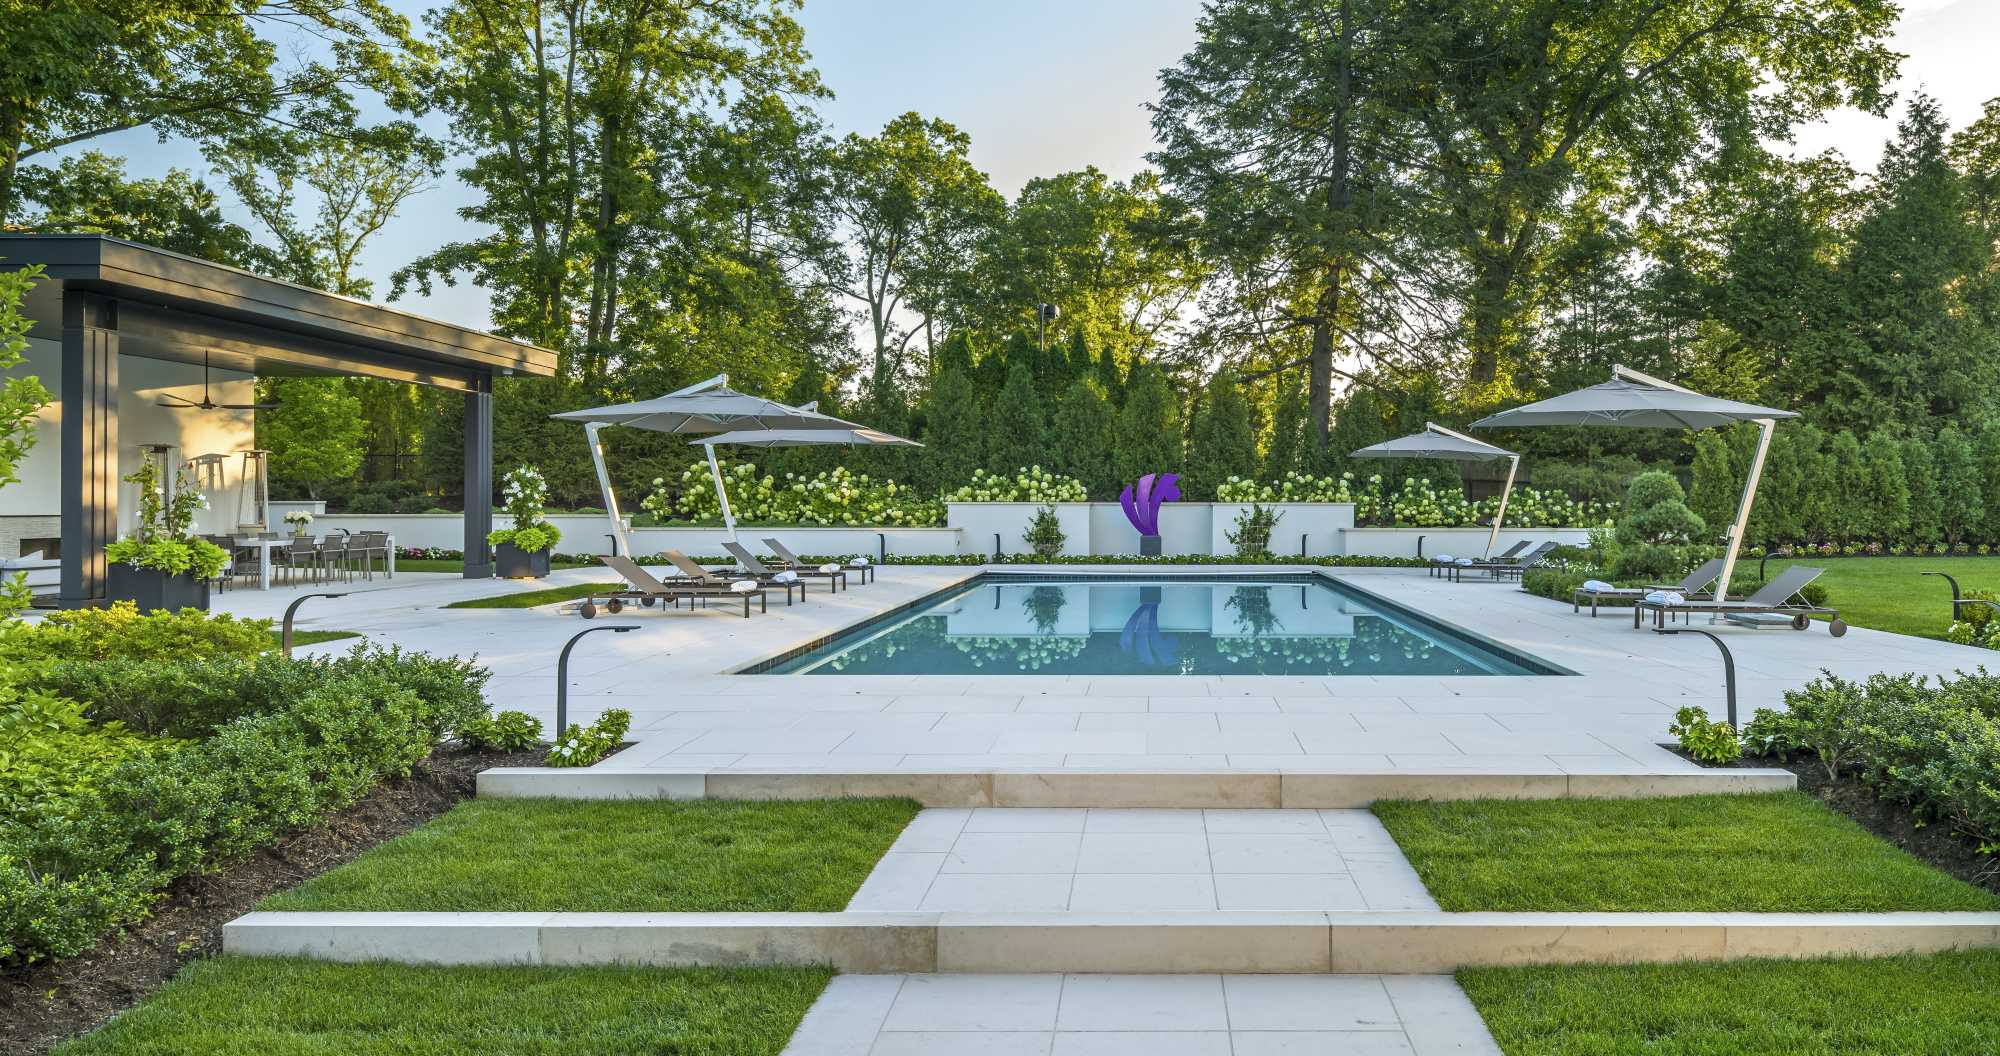 Contemporary pool terrace by landscape architects Sudbury Design Group